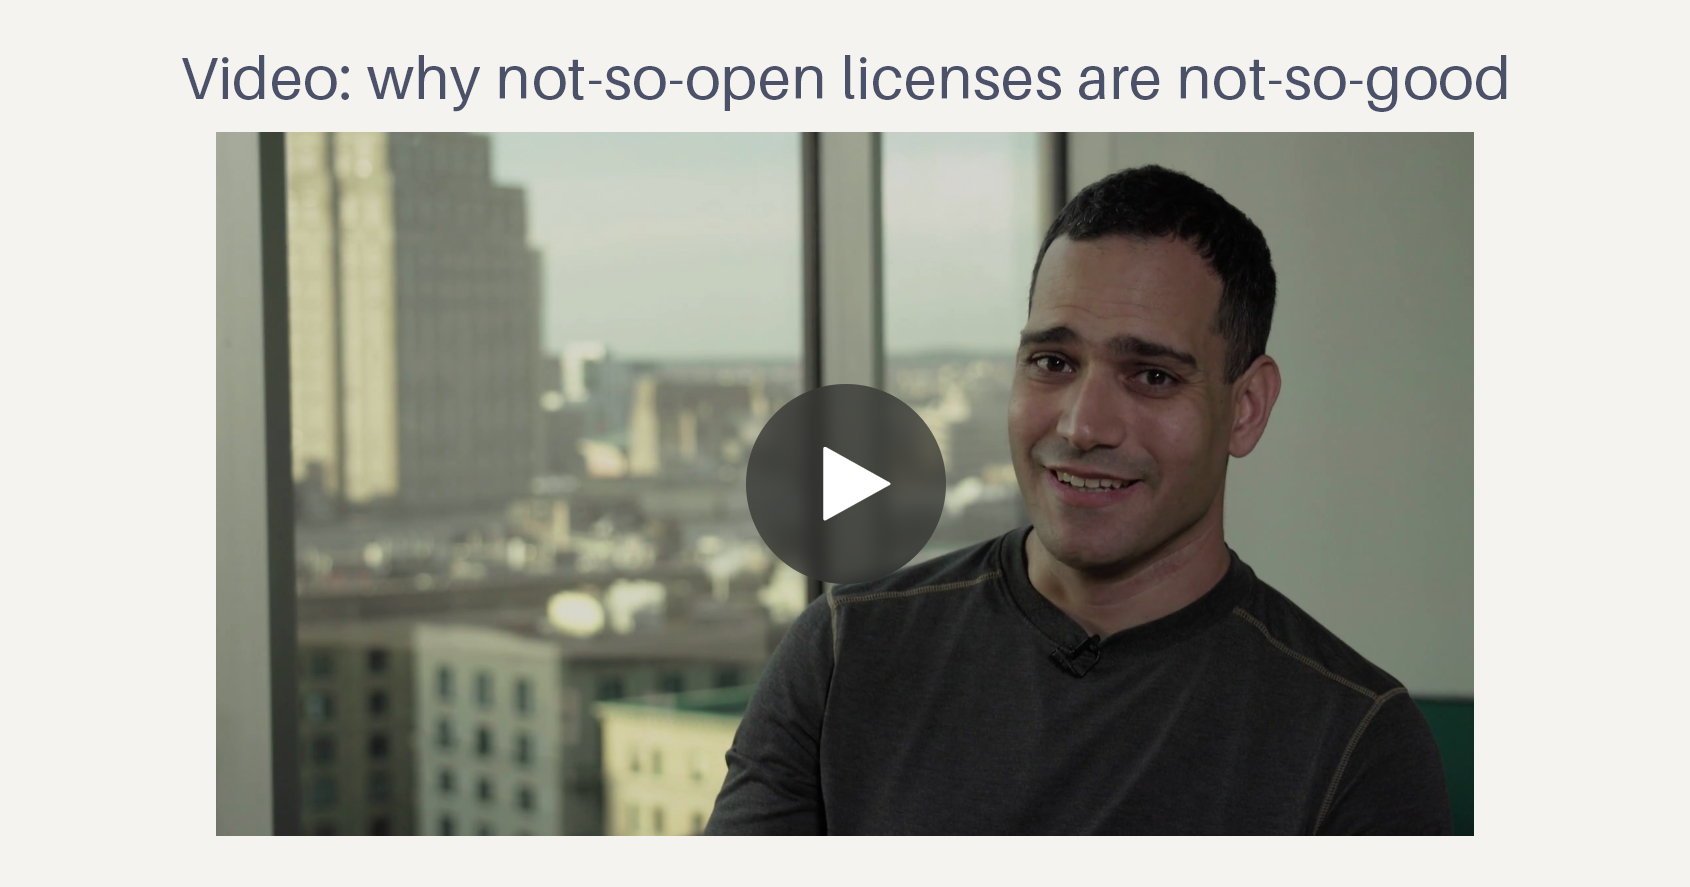 Video: why not-so-open licenses are not-so-good